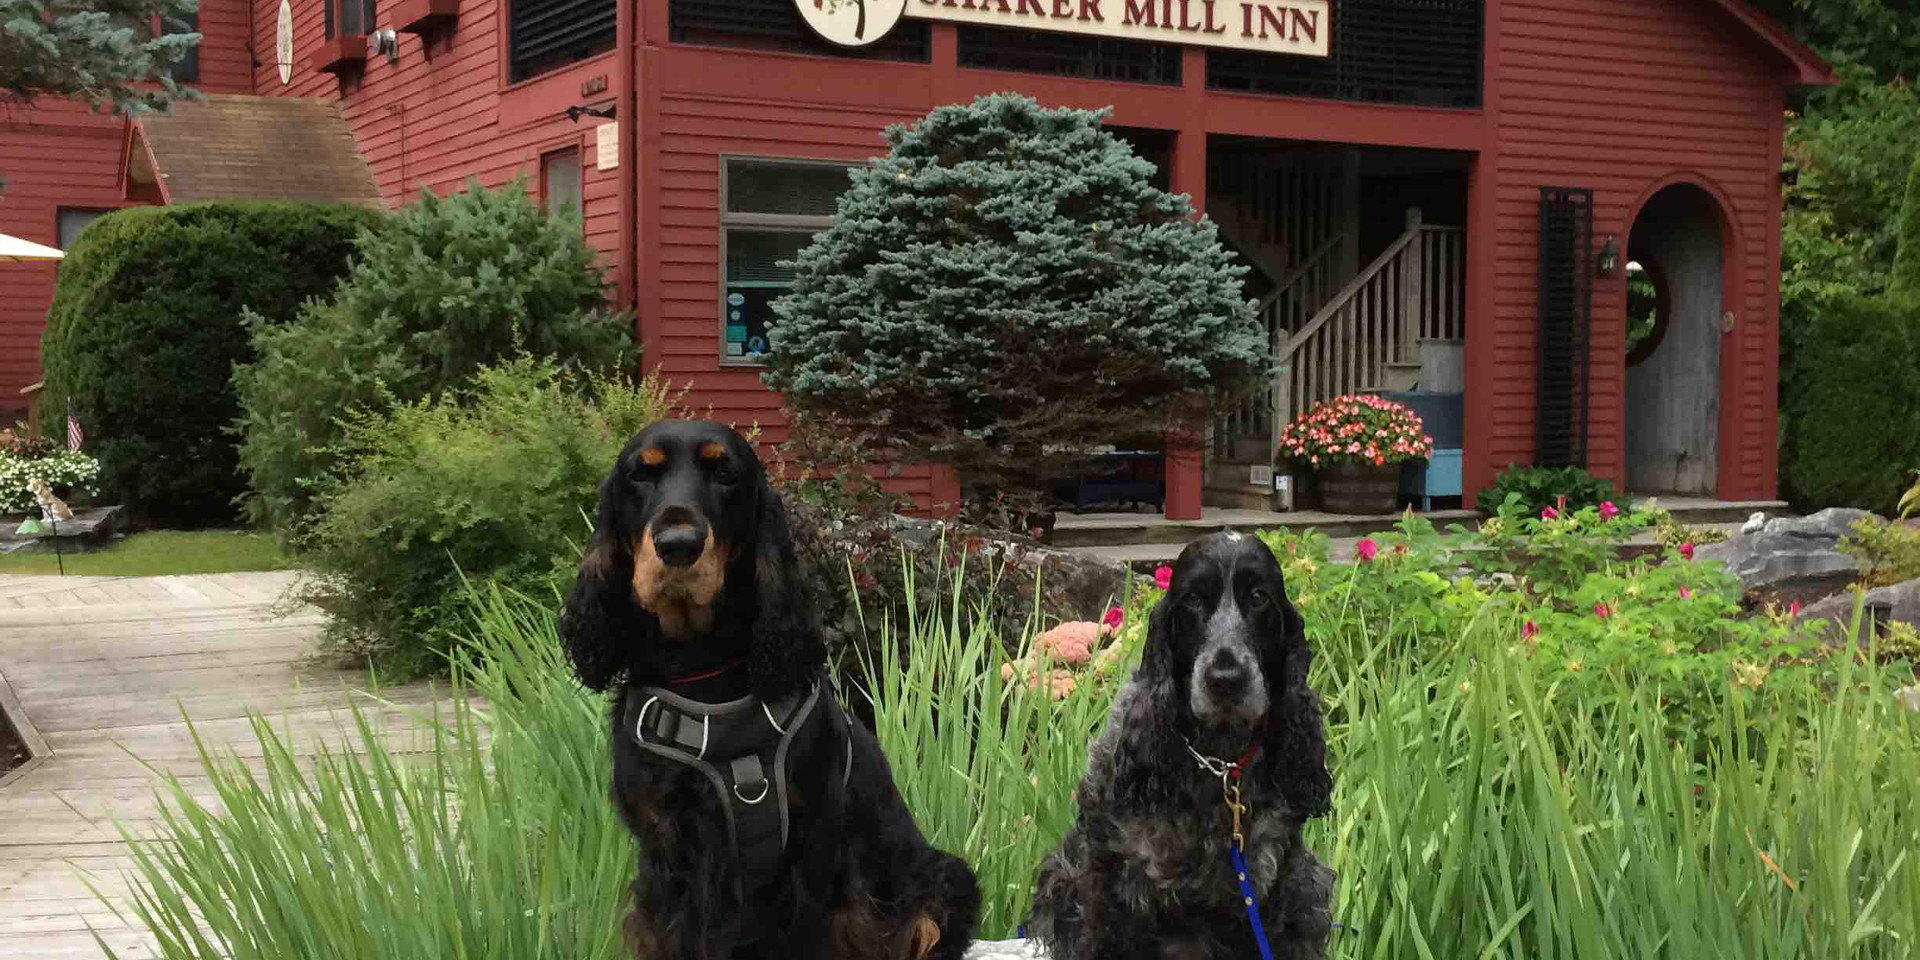 Dogs Outside of Shaker Mill Inn